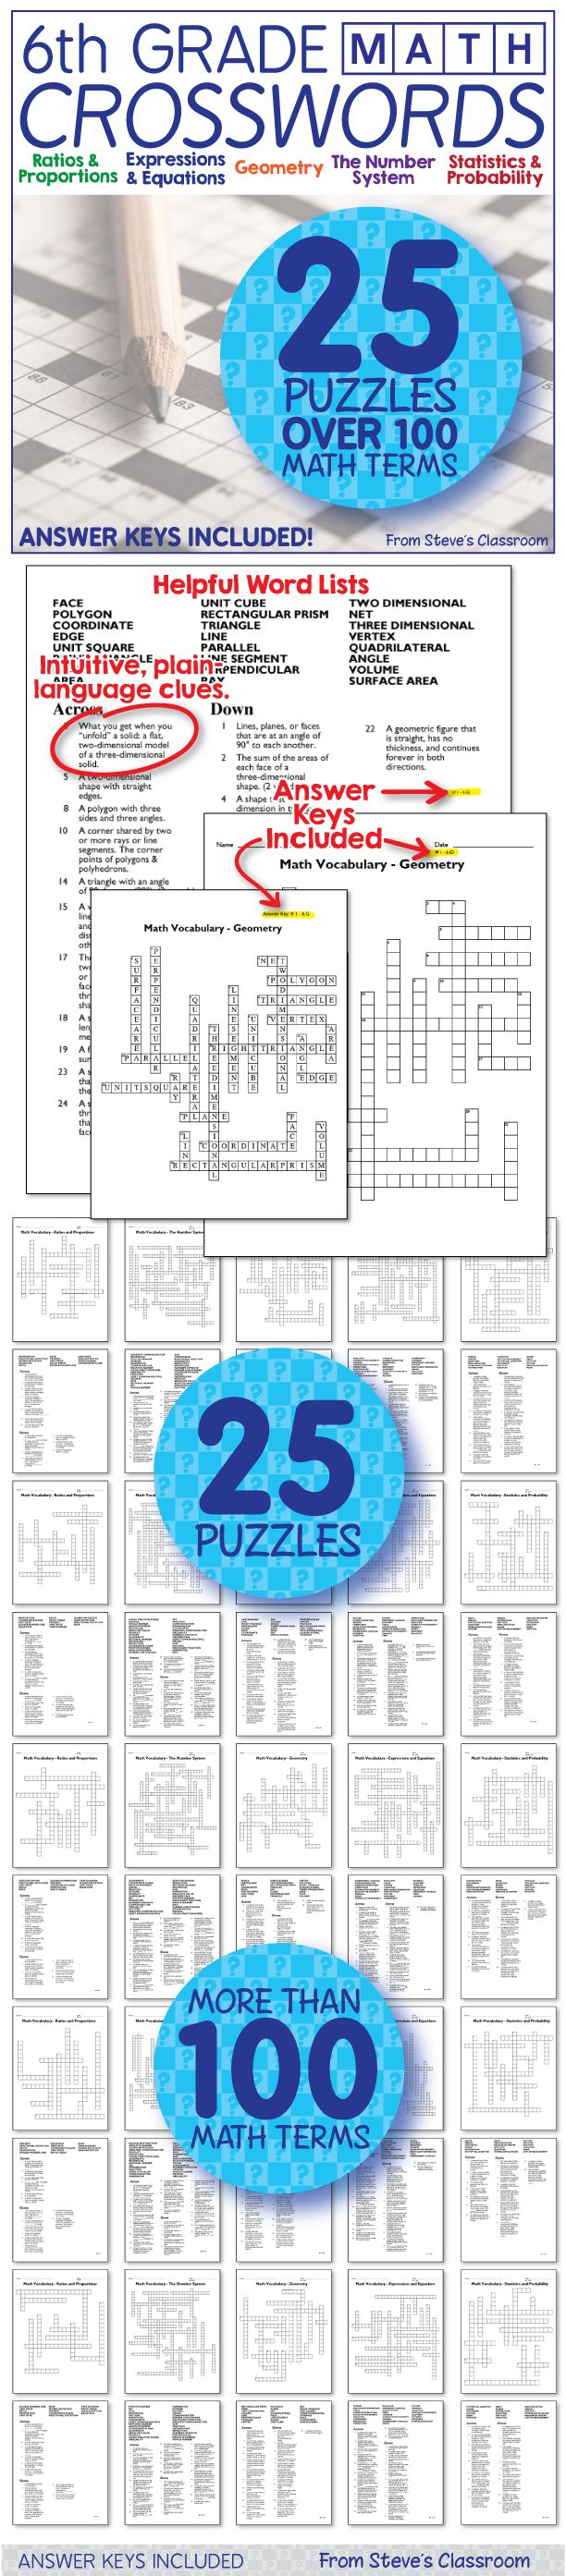 6th grade math vocabulary crossword puzzles! New Product! These sixth grade math crossword puzzles are half off until Sunday Oct. 18!